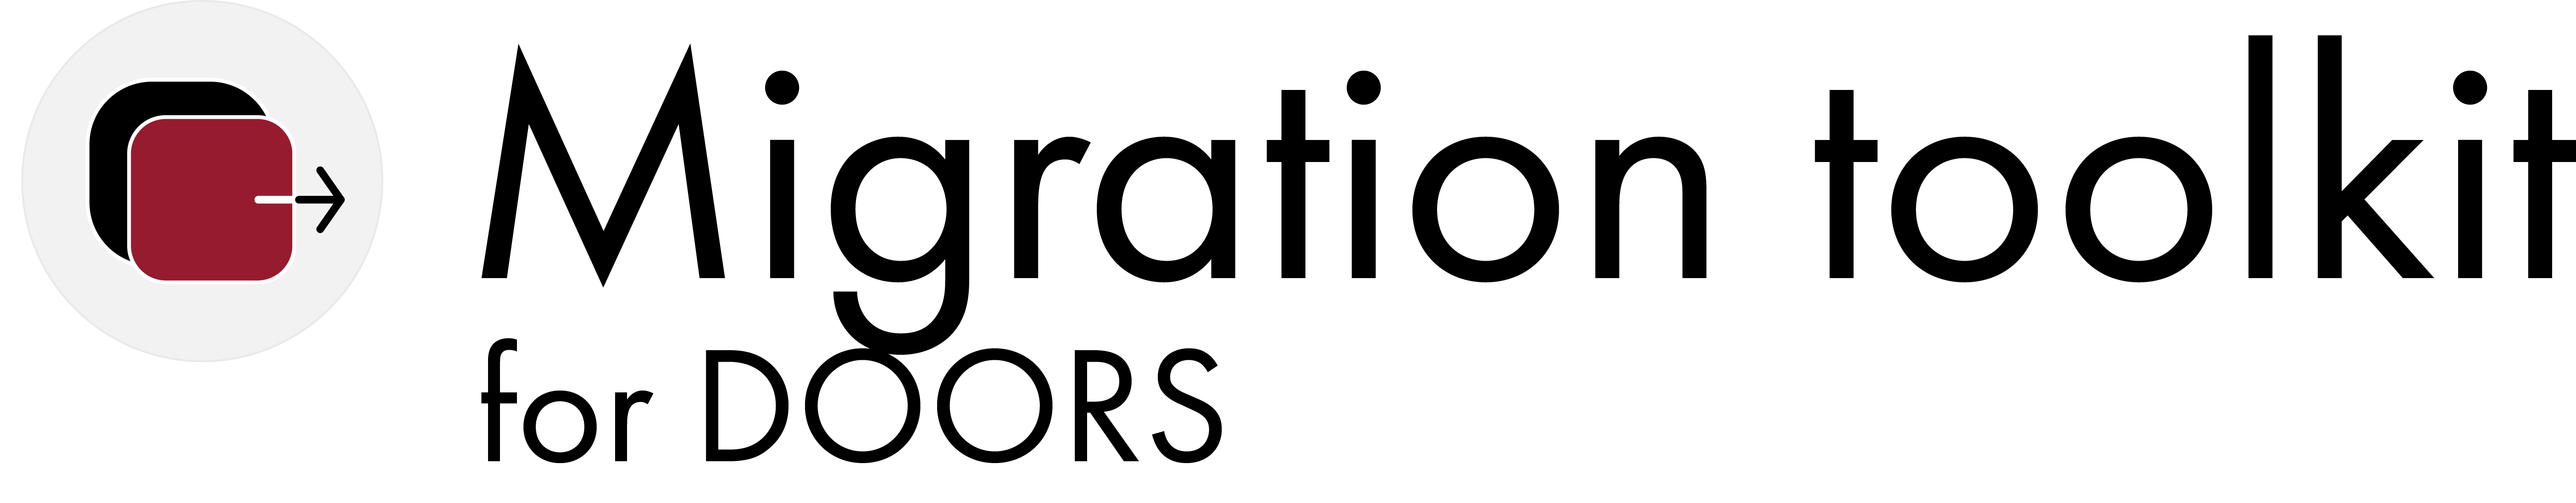 Logo_Migration toolkit for DOORS_SodiusWillert_2020_black